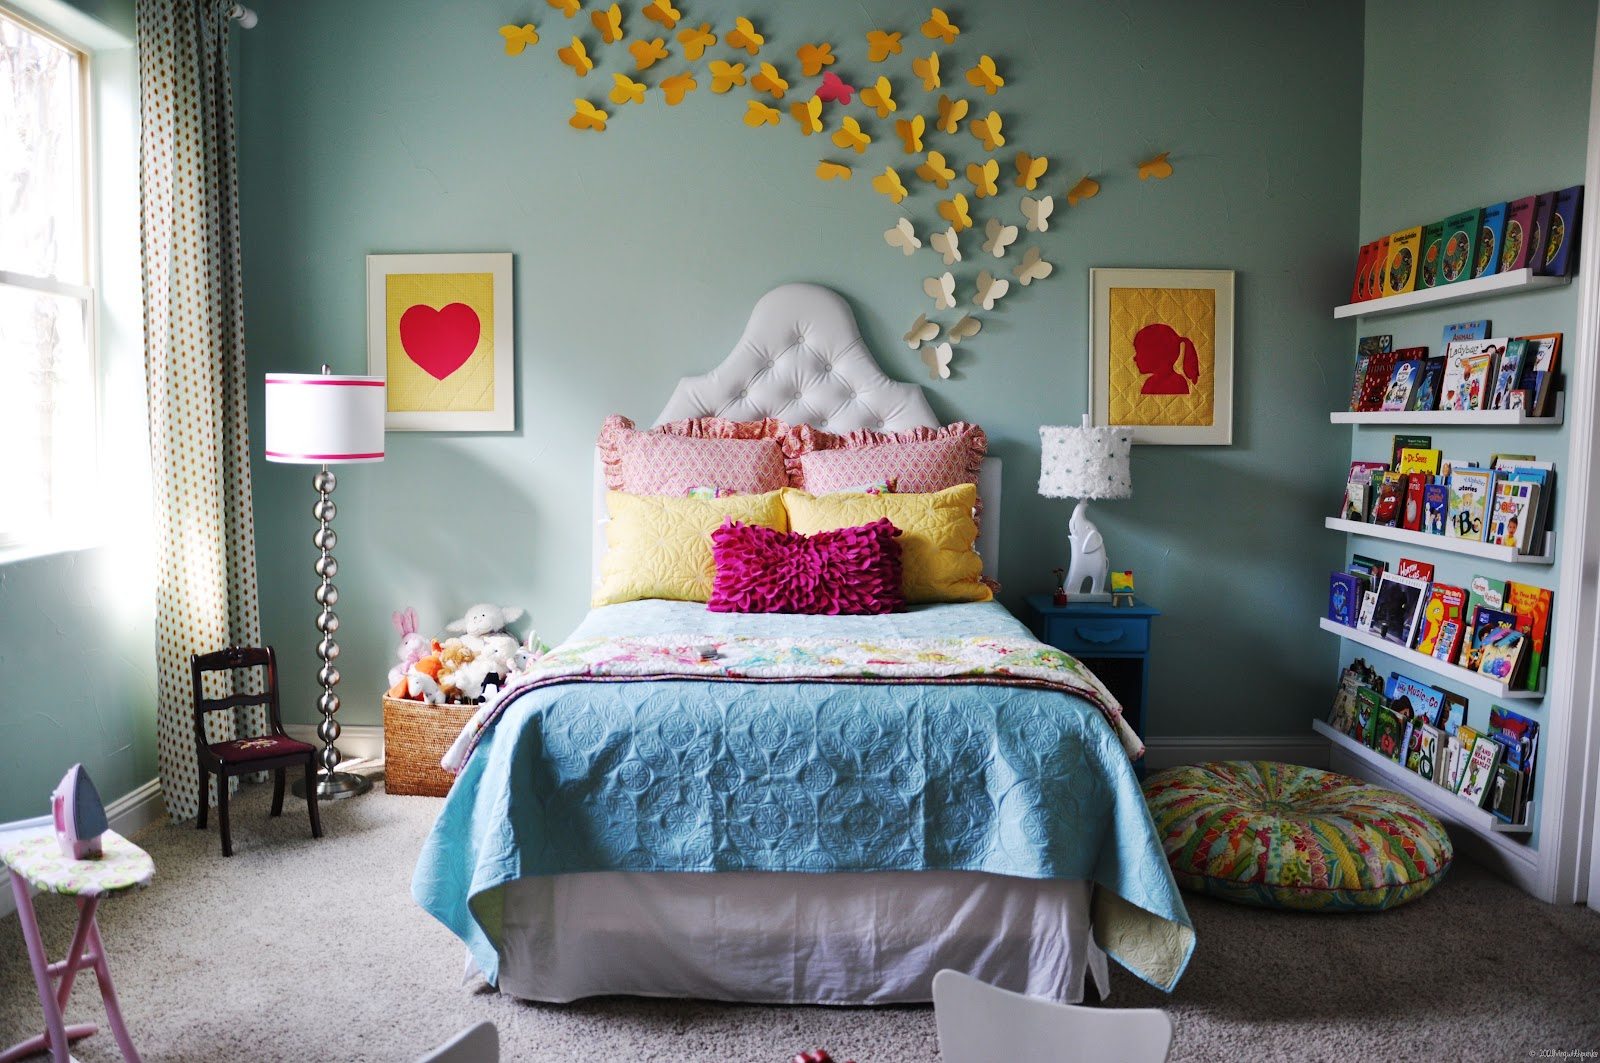 Big girl bedroom ideas - Girls room ideas ...